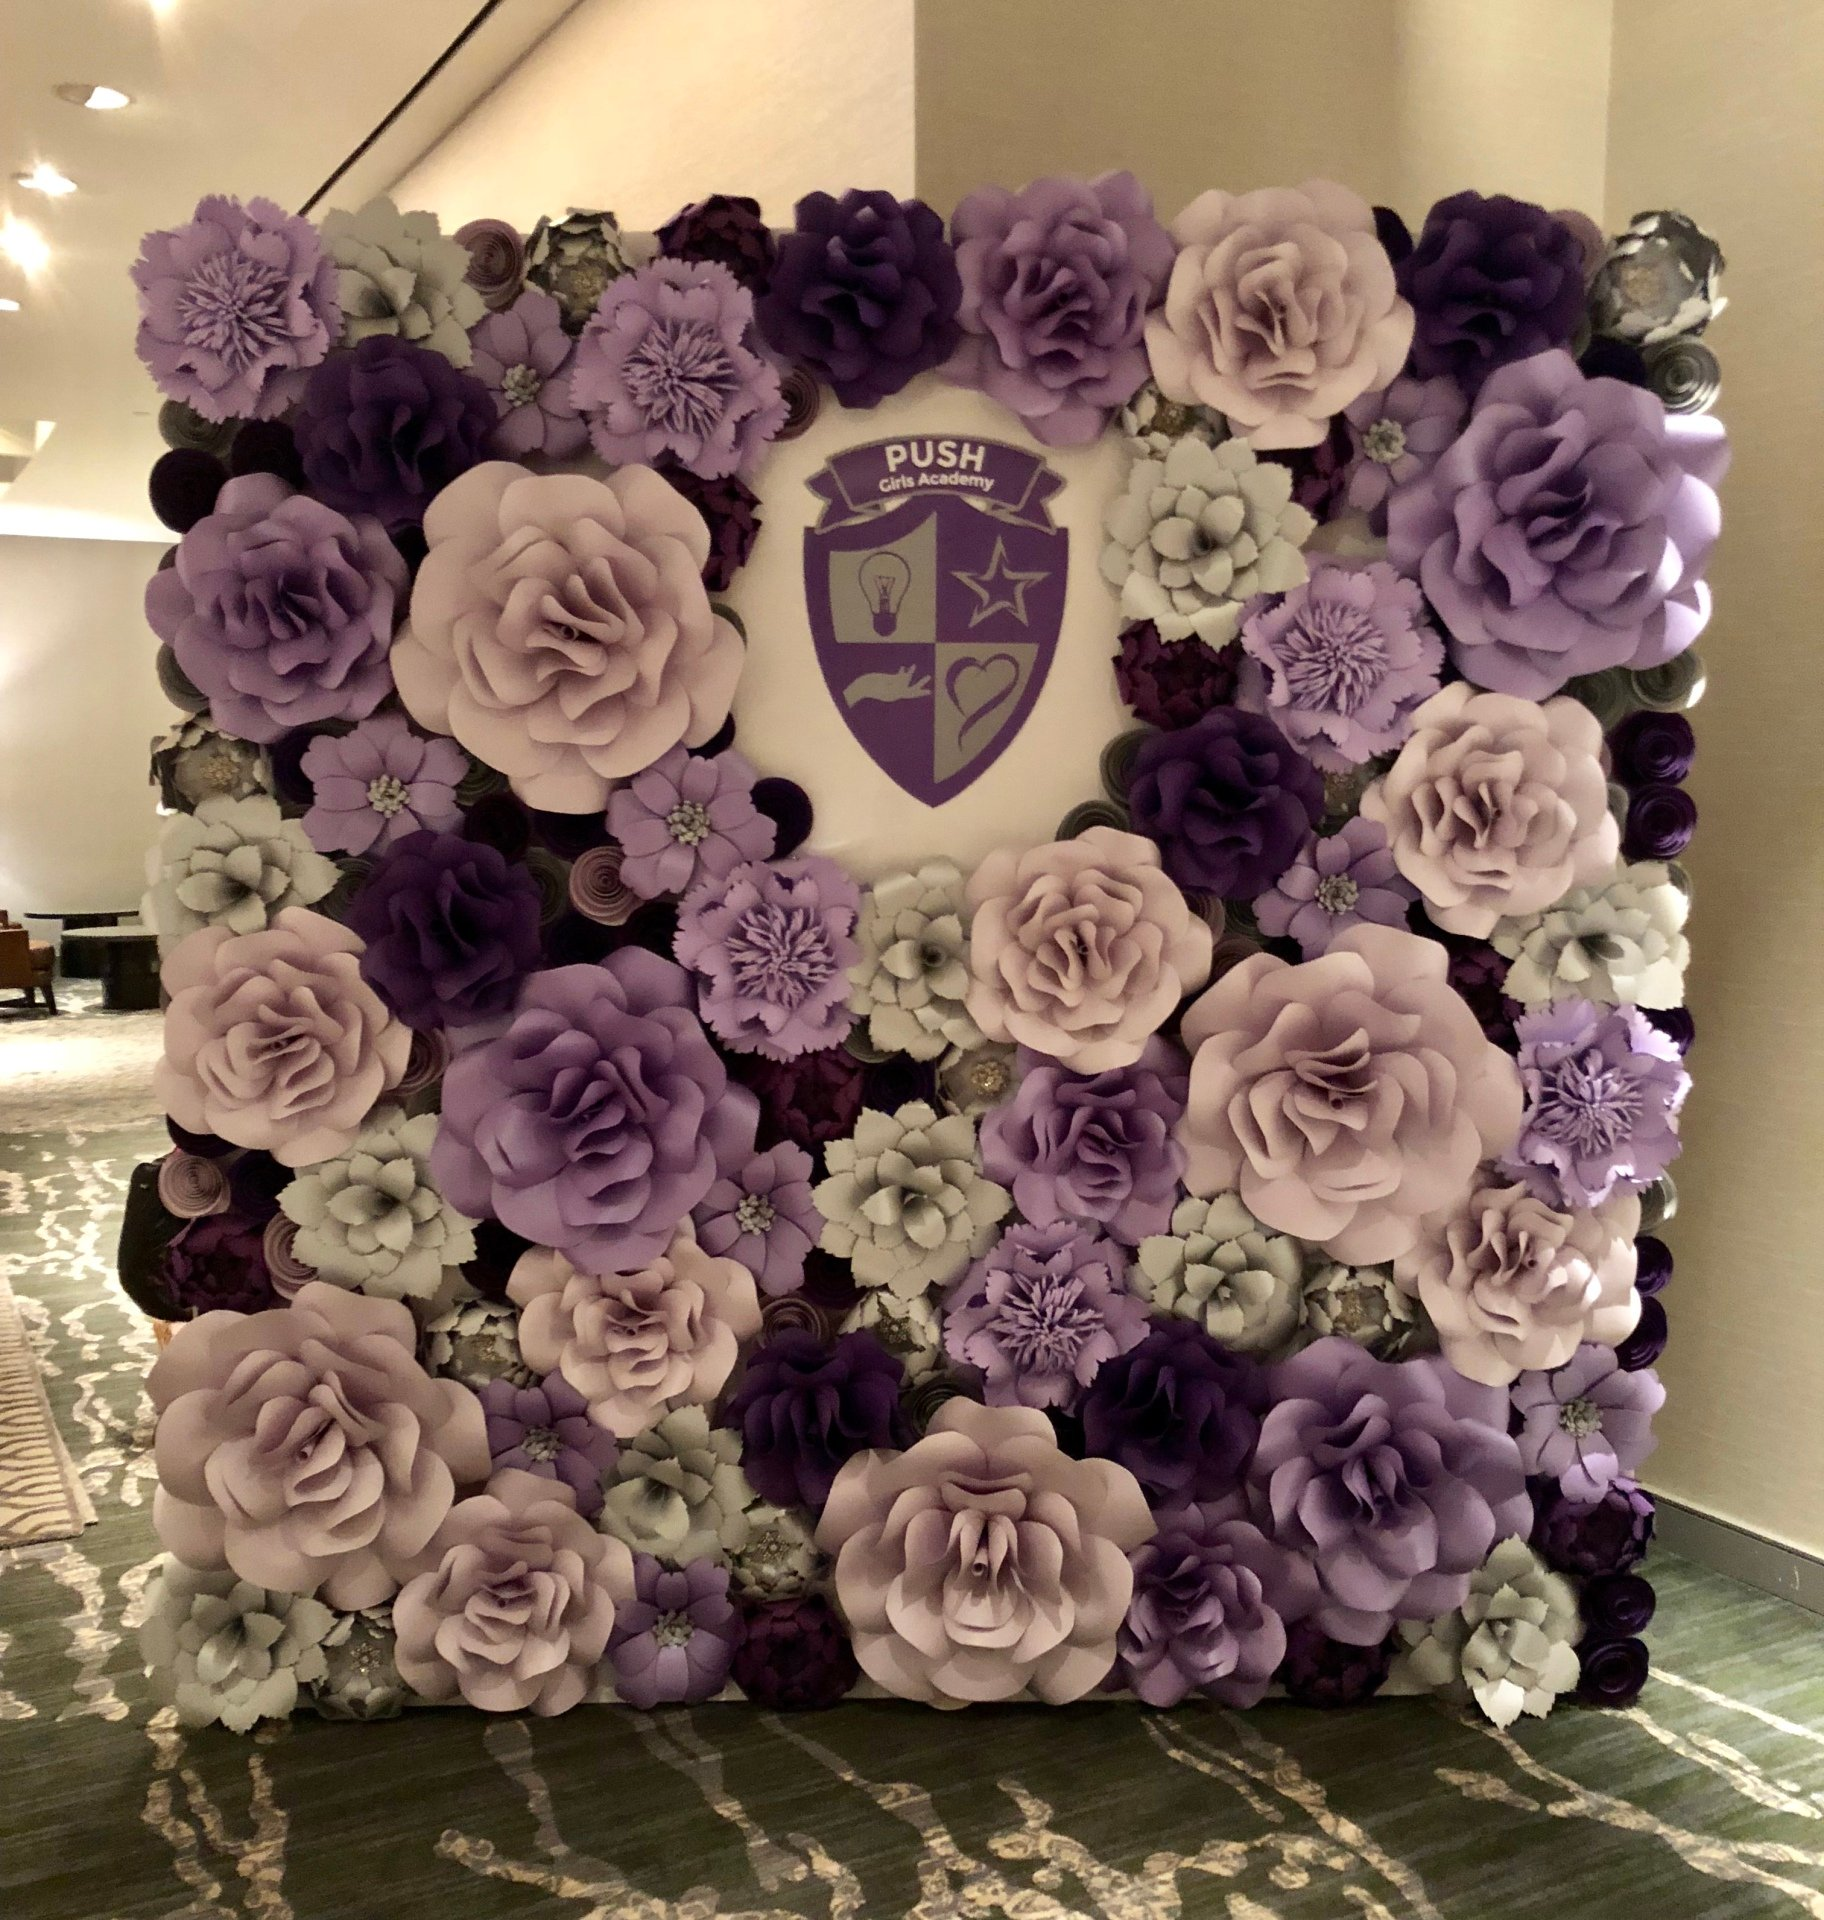 Corporate event decor, women's event, corporate party, decor, paper flowers